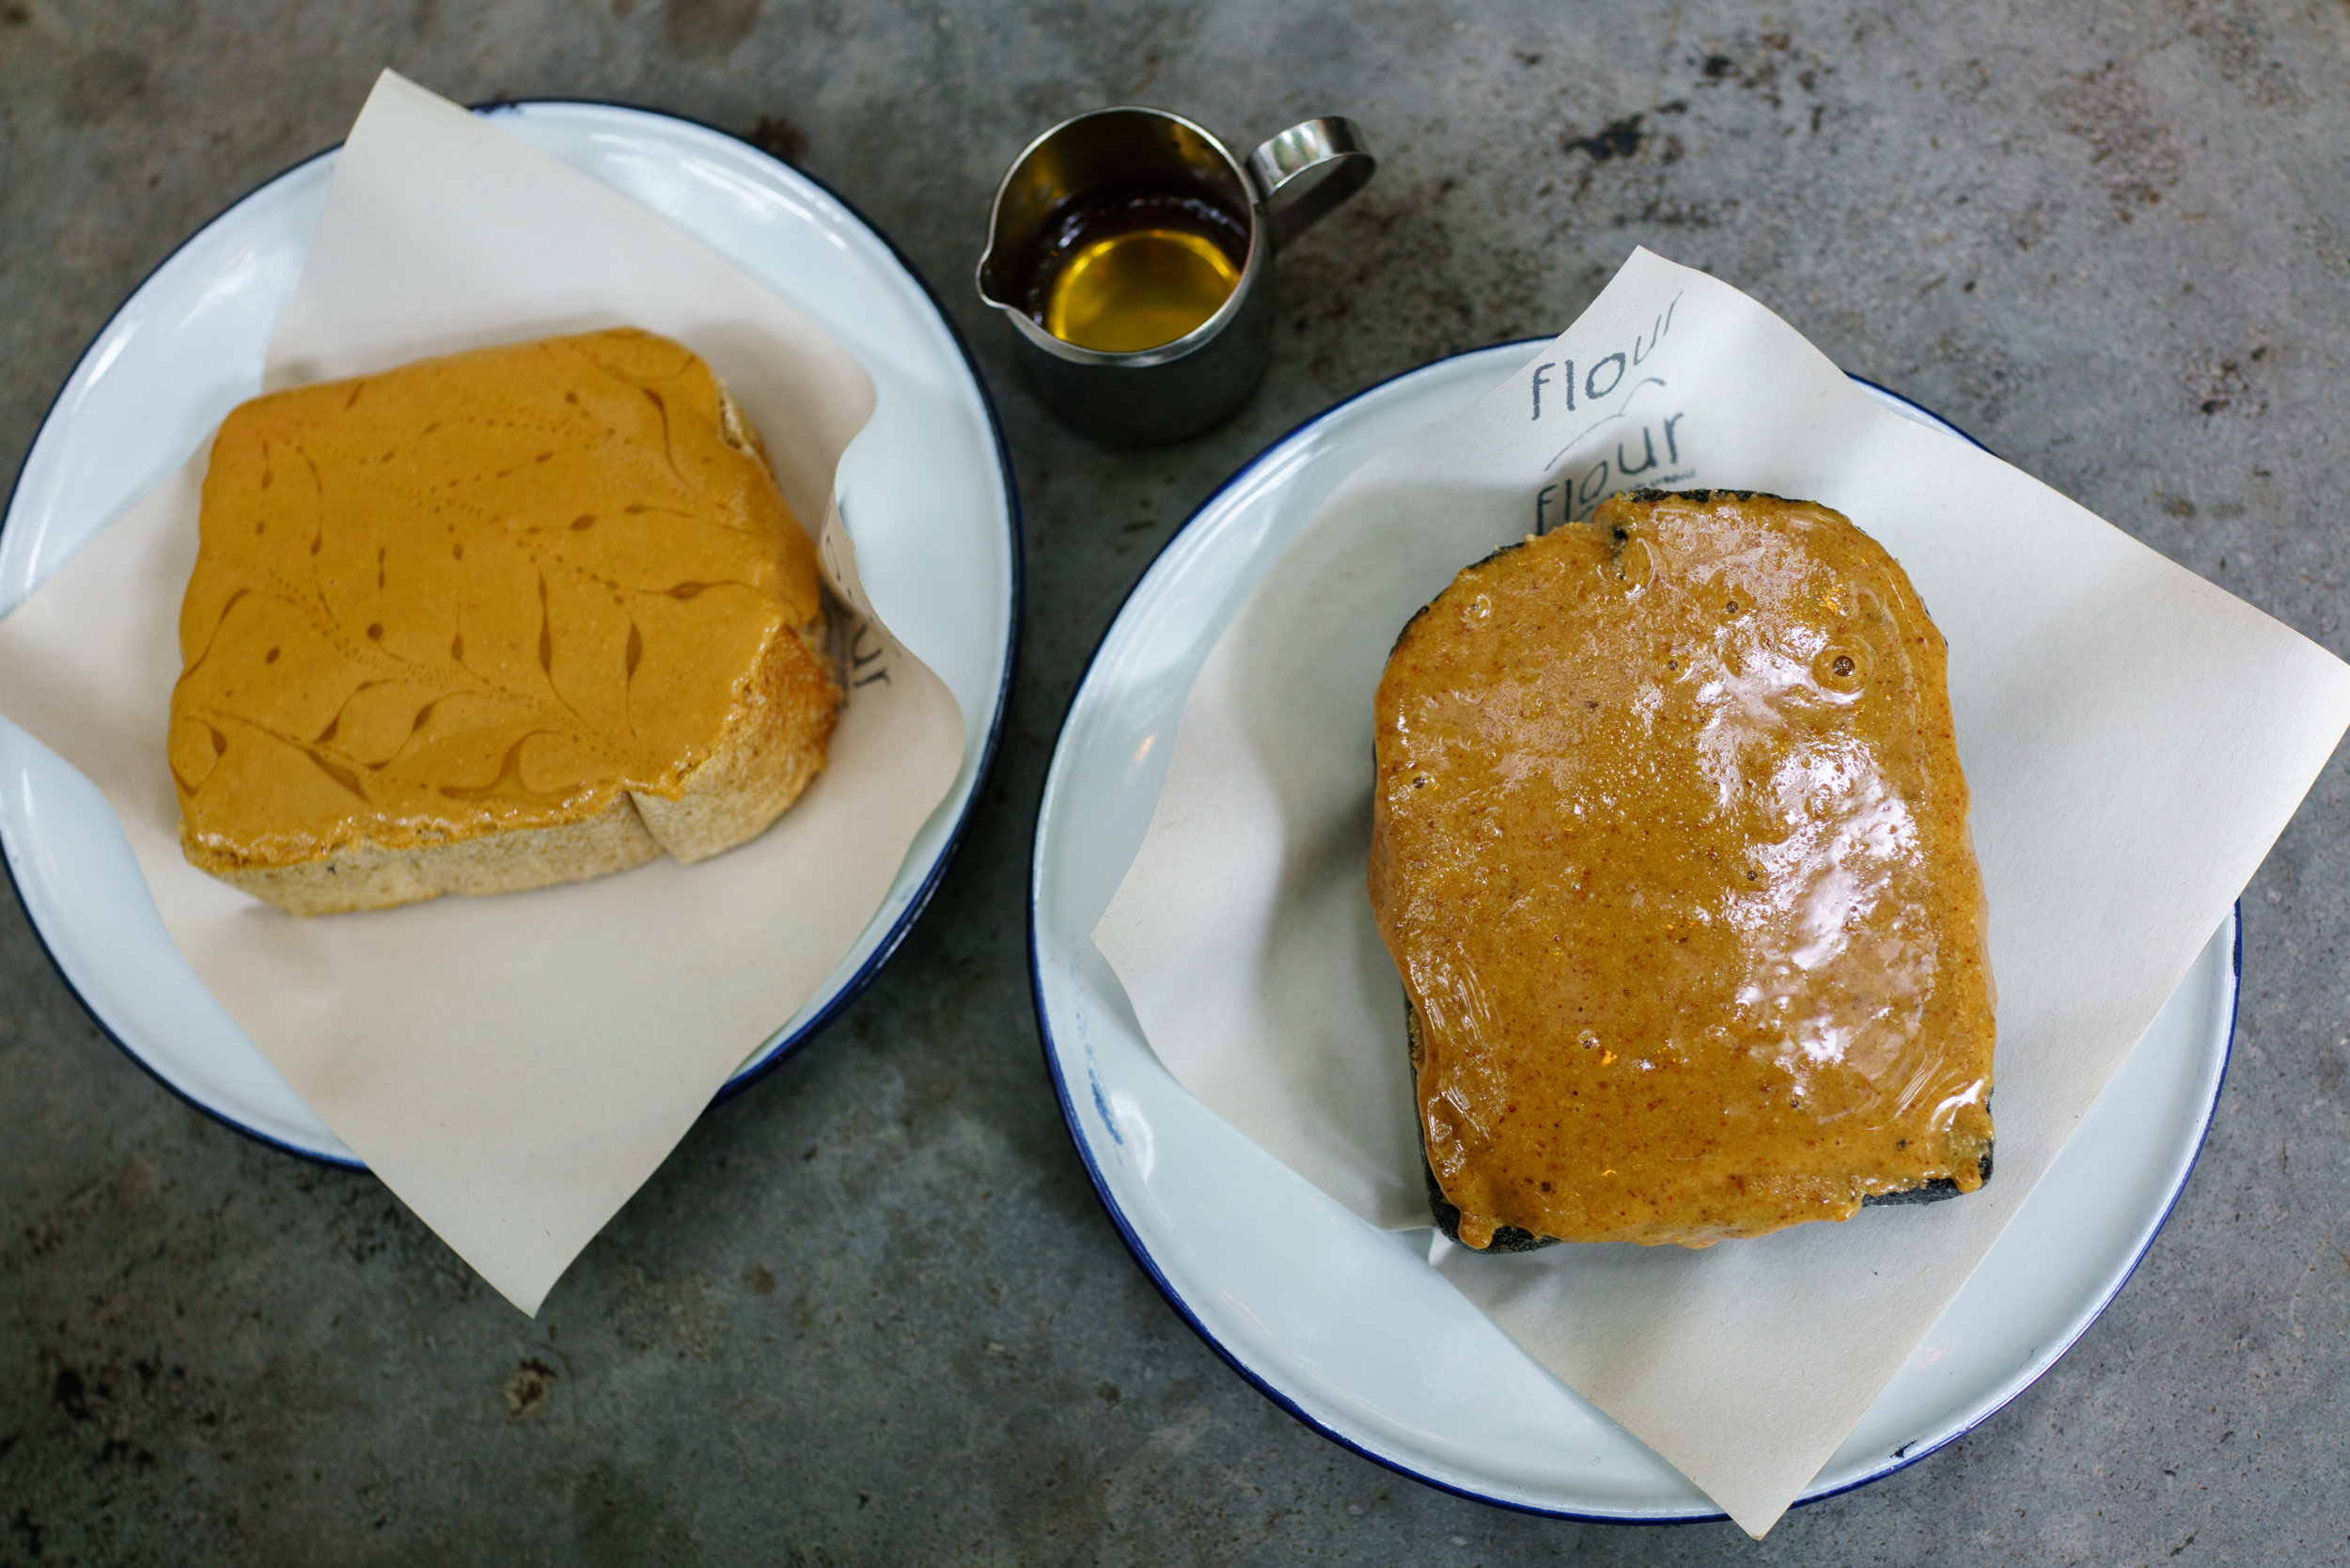 Whole wheat toast with homemade Peanut Butter and honey; Charcoal toast with homemade Almond Butter